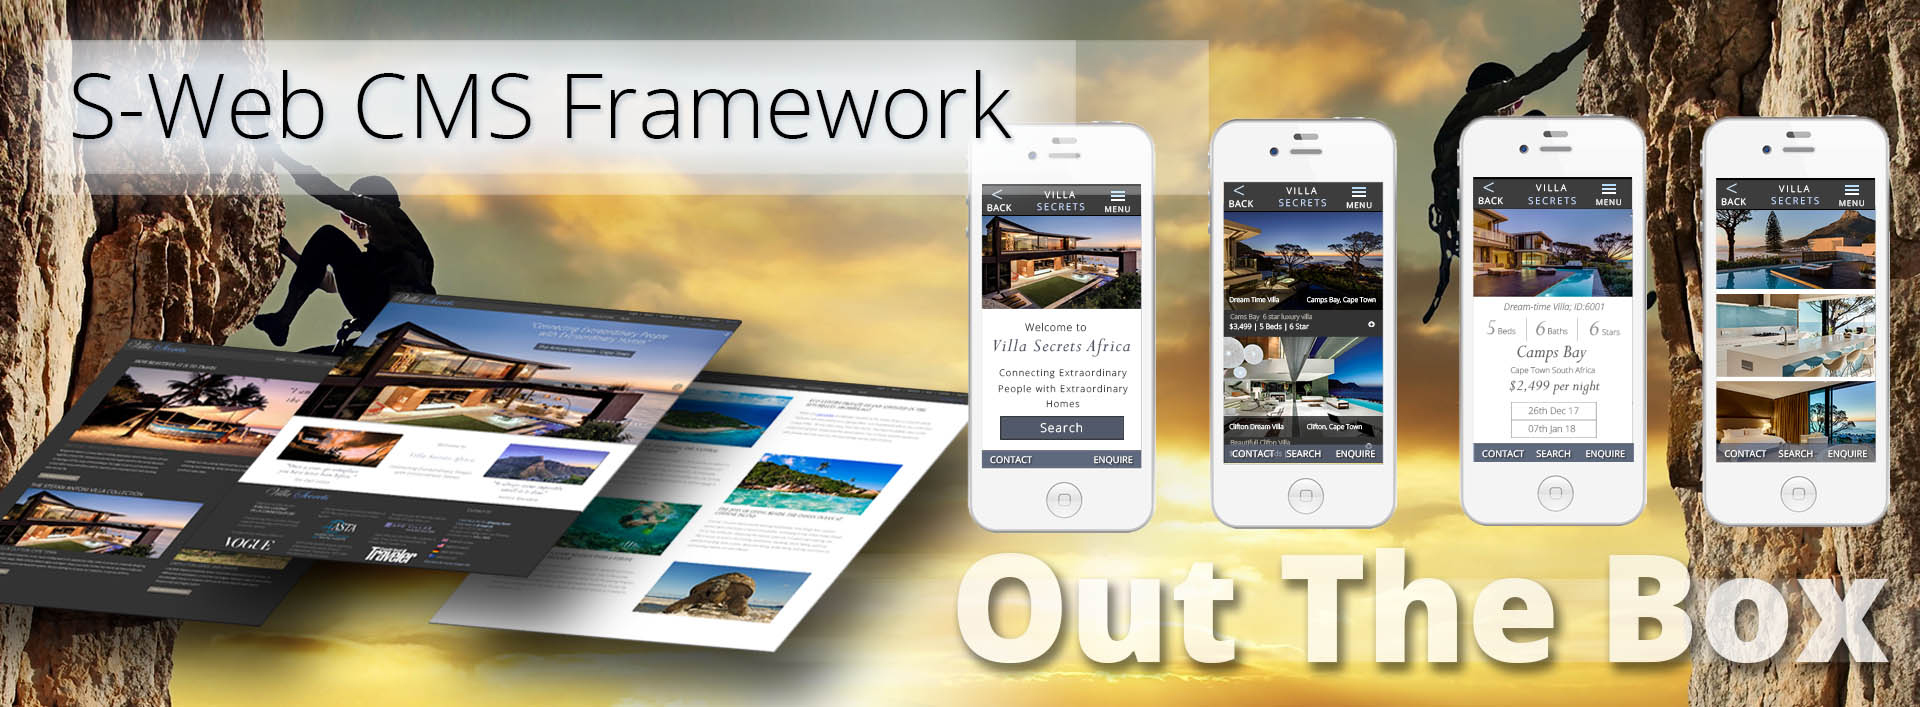 S-Web CMS Framework-Out the box